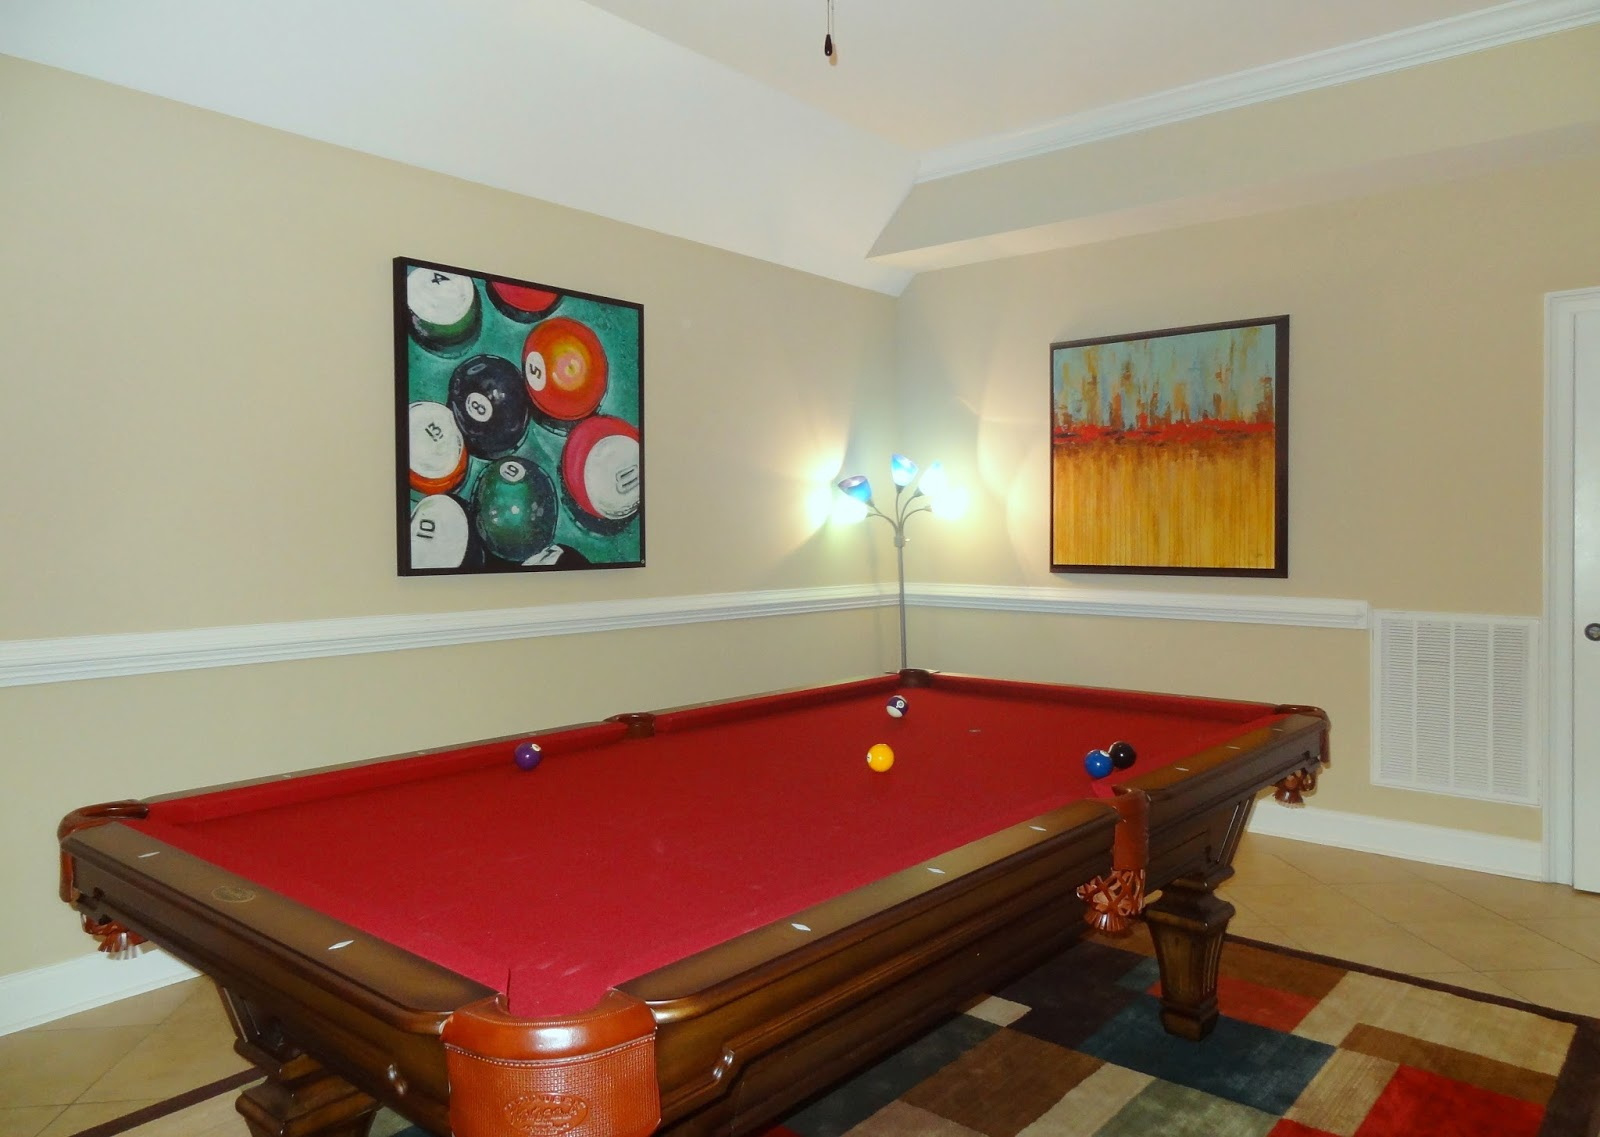 This Pool Table Made The Basement Fun For The Entire Family!